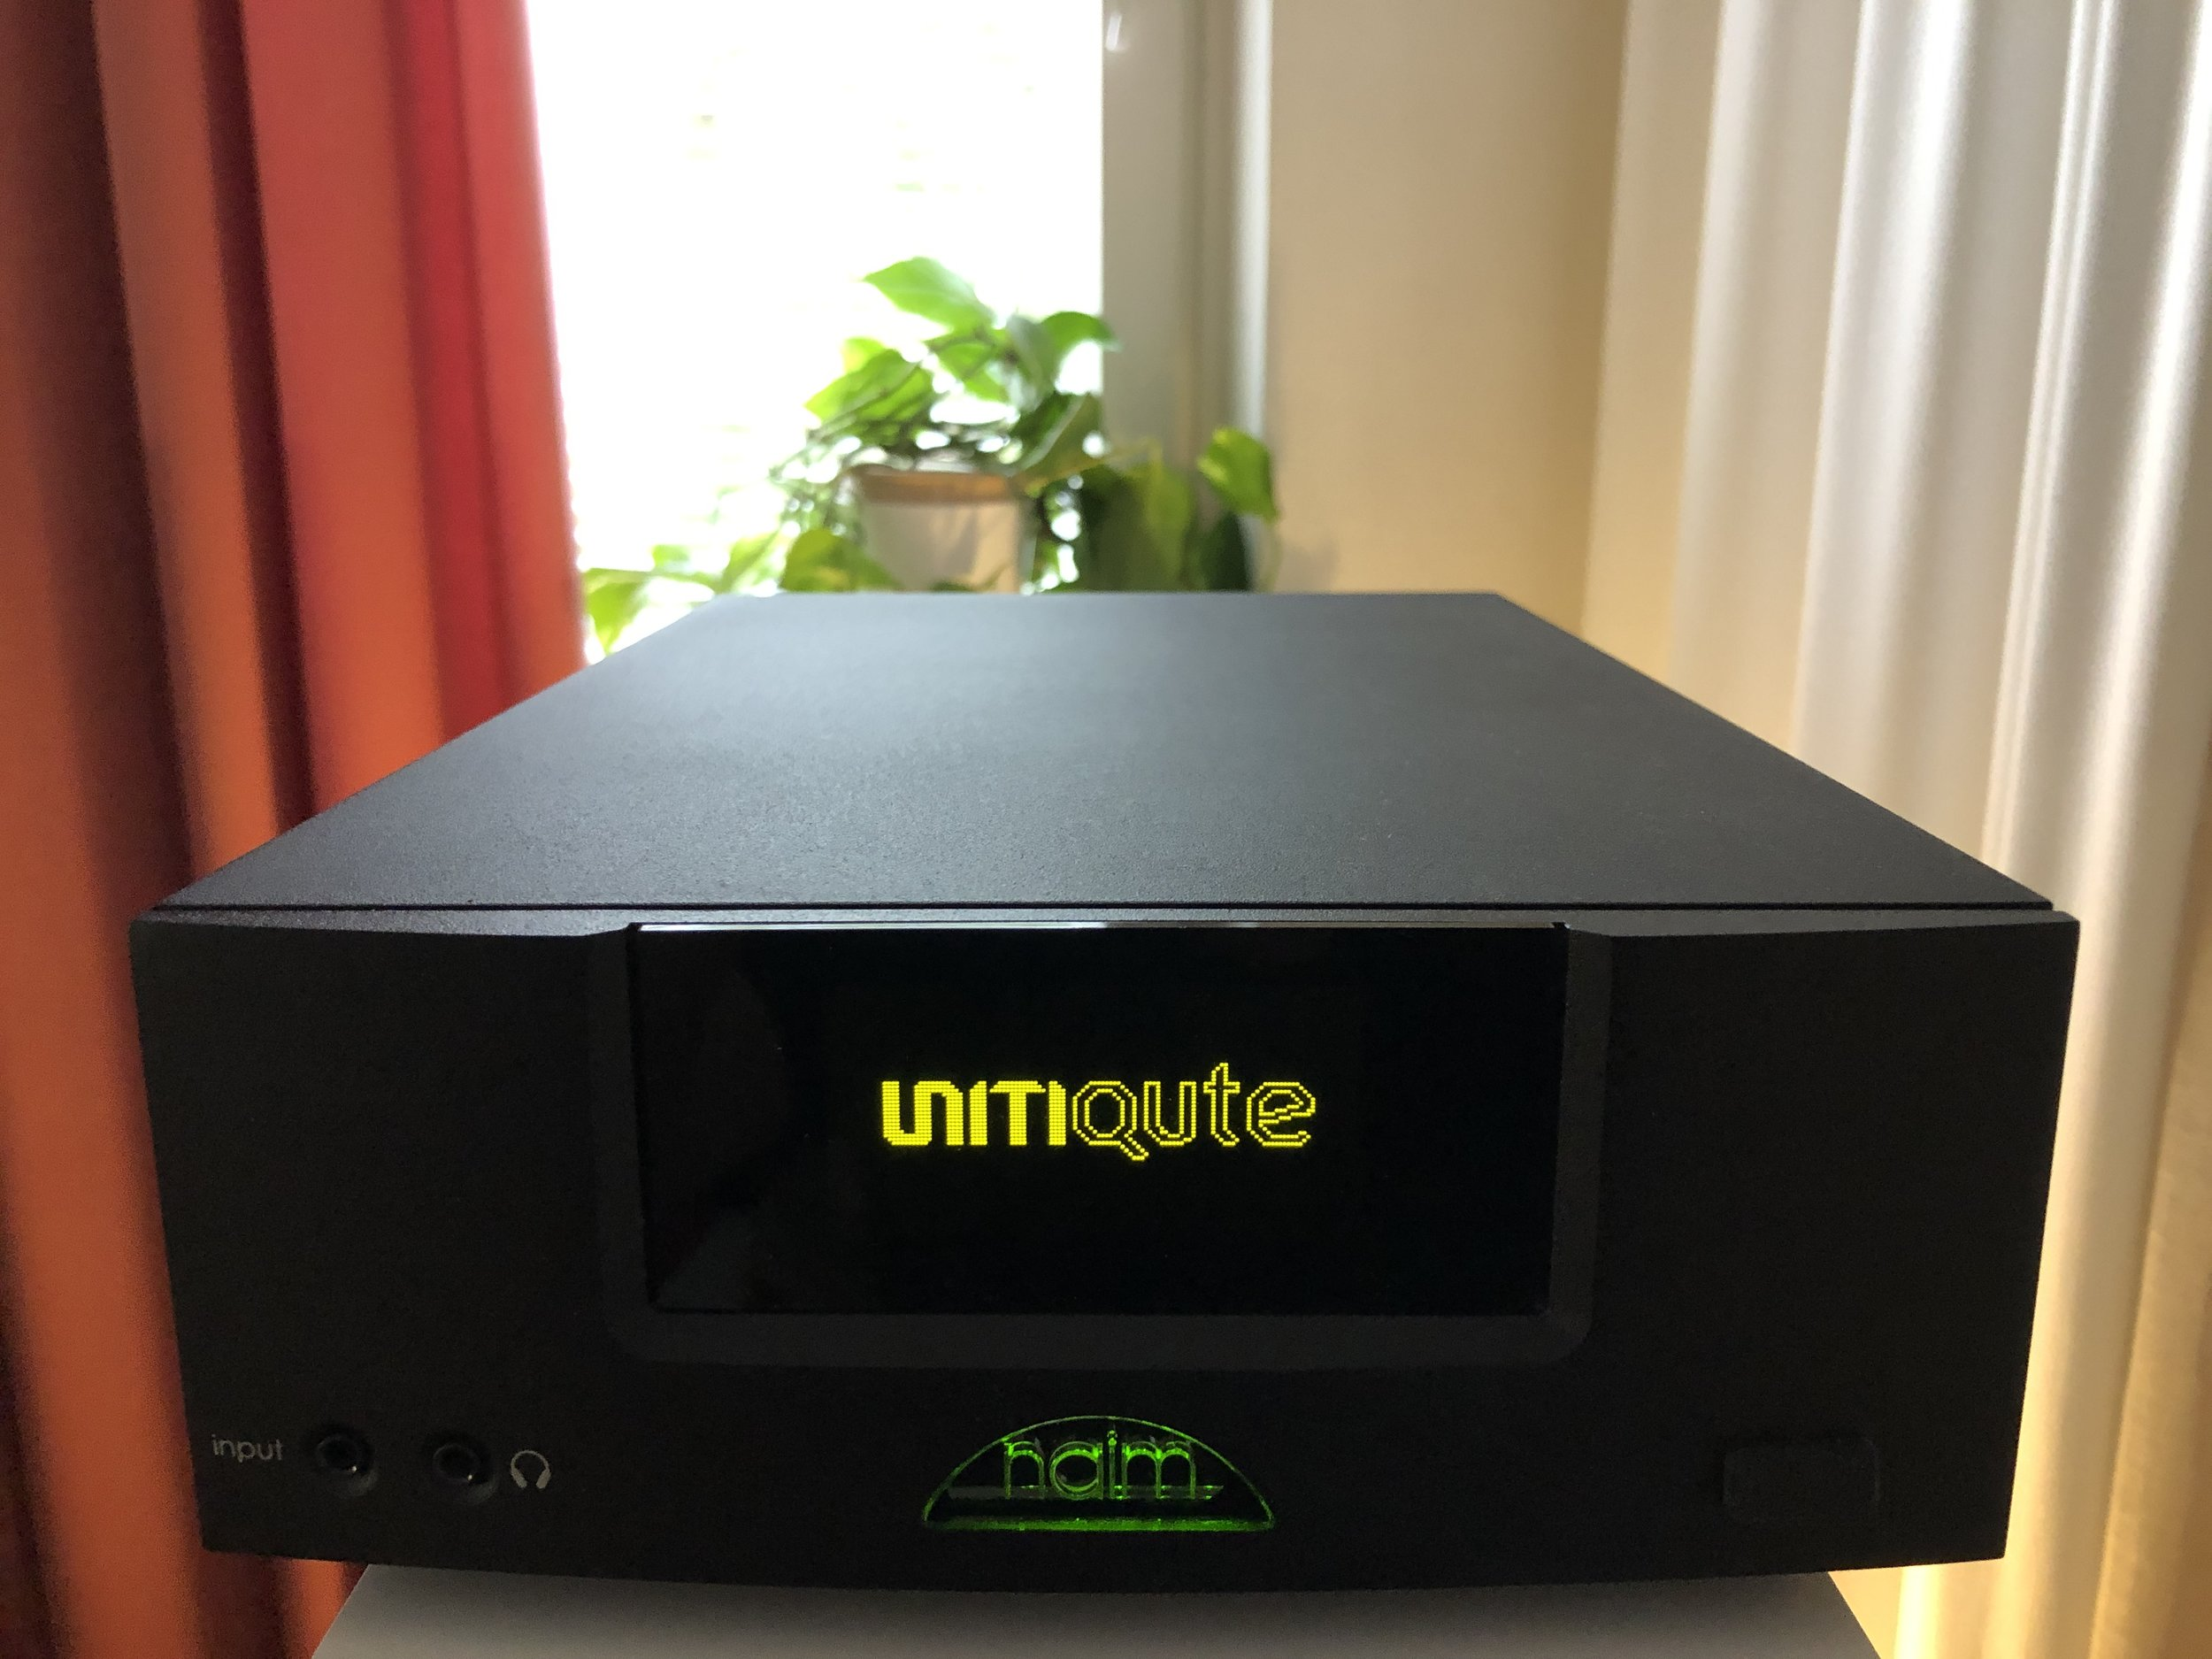 IMG_3031.JPG; naim unitiQute All-in-One Player